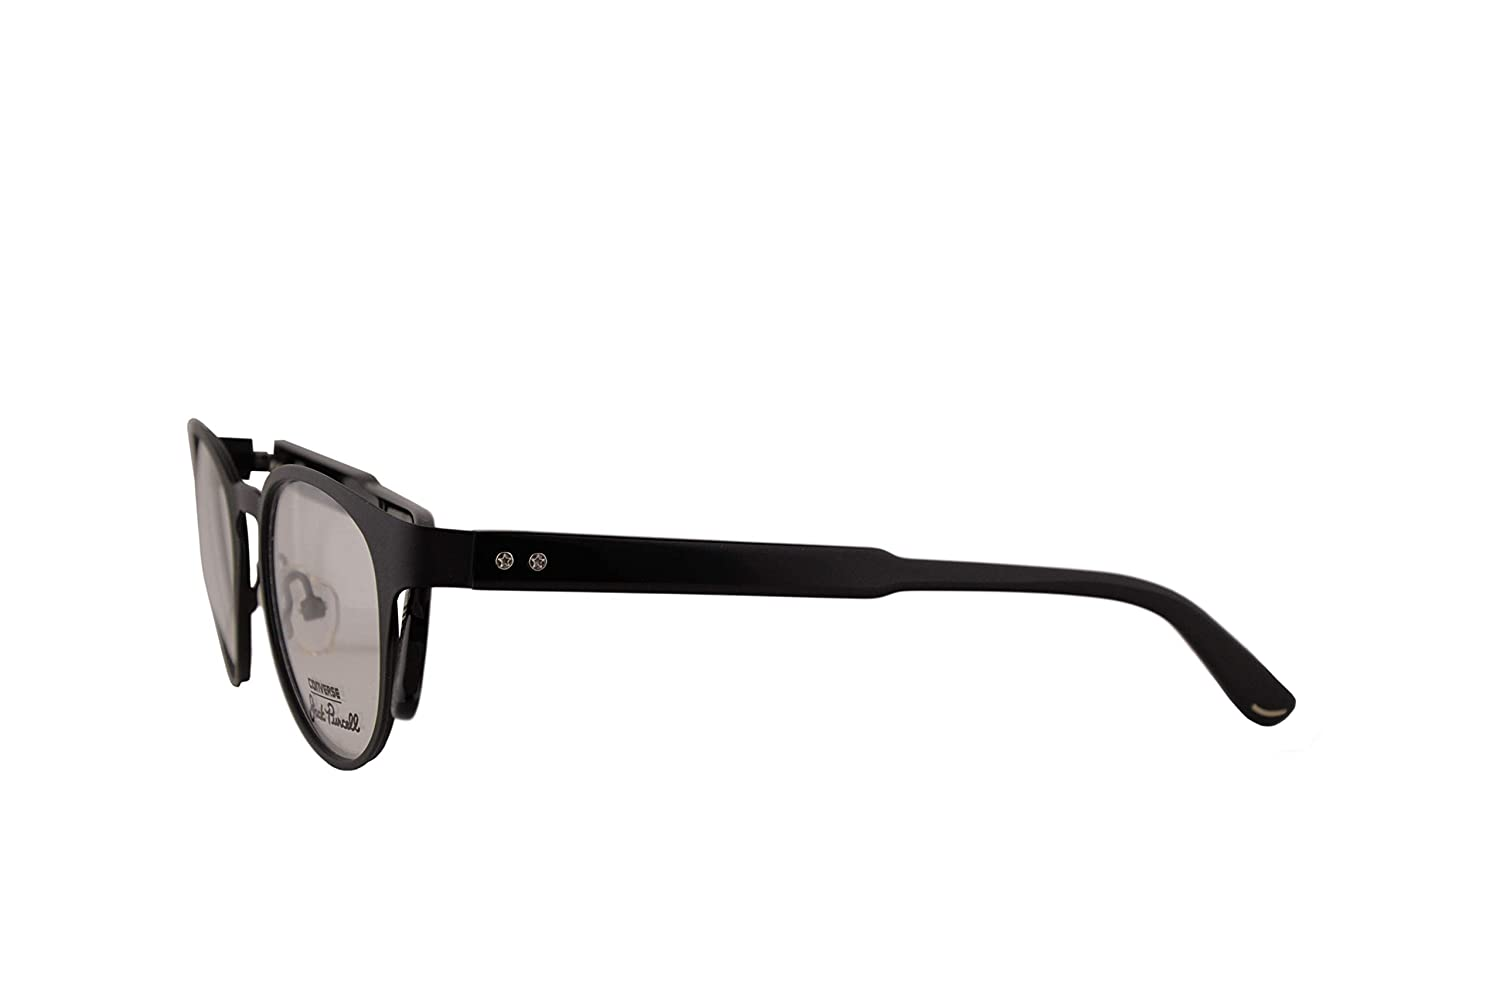 Converse All Star P009 Jack Purcell Eyeglasses 48-19-145 Matte Black w//Demo Clear Lens P 009